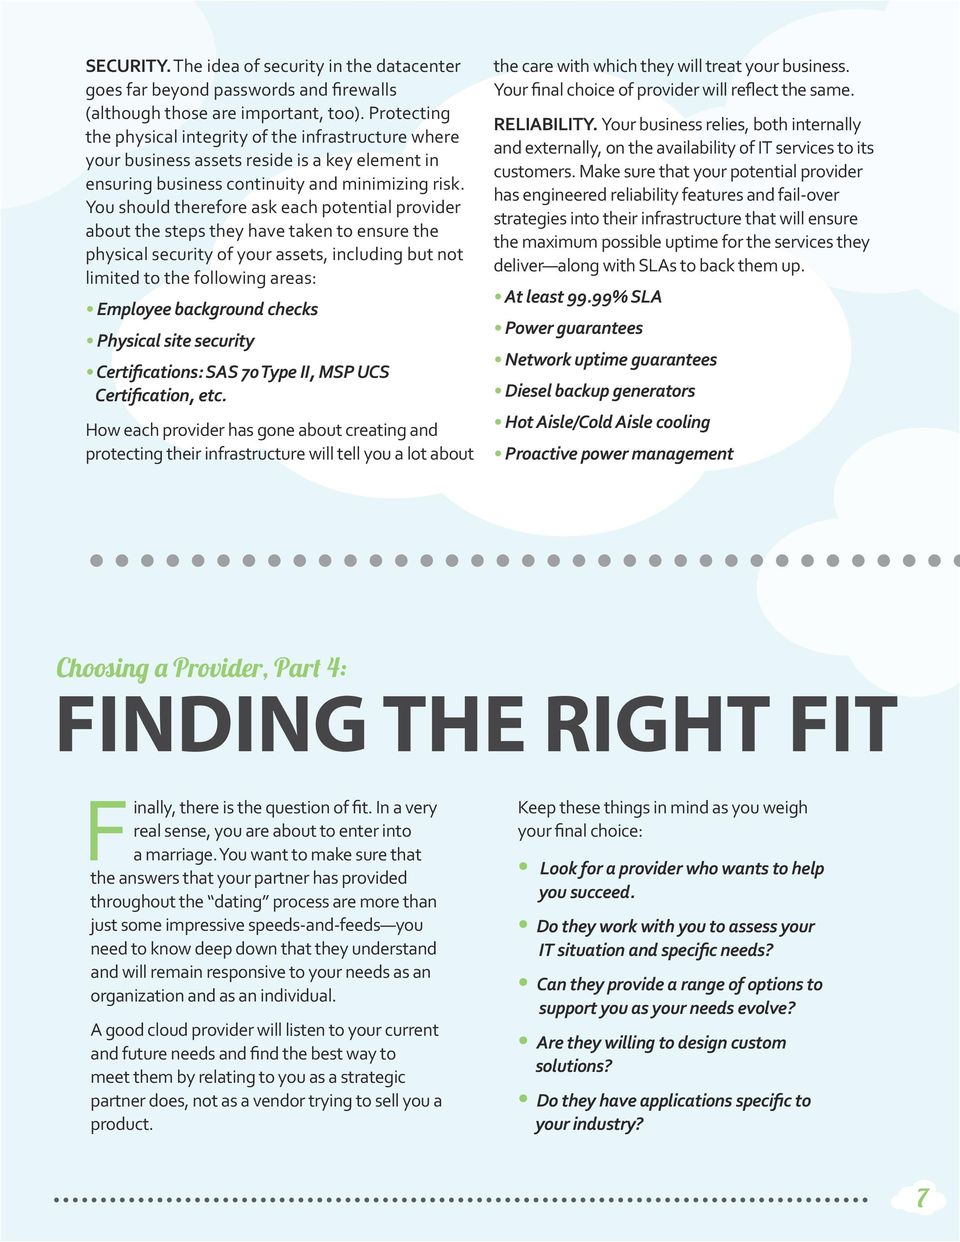 You should therefore ask each potential provider about the steps they have taken to ensure the physical security of your assets, including but not limited to the following areas: Employee background